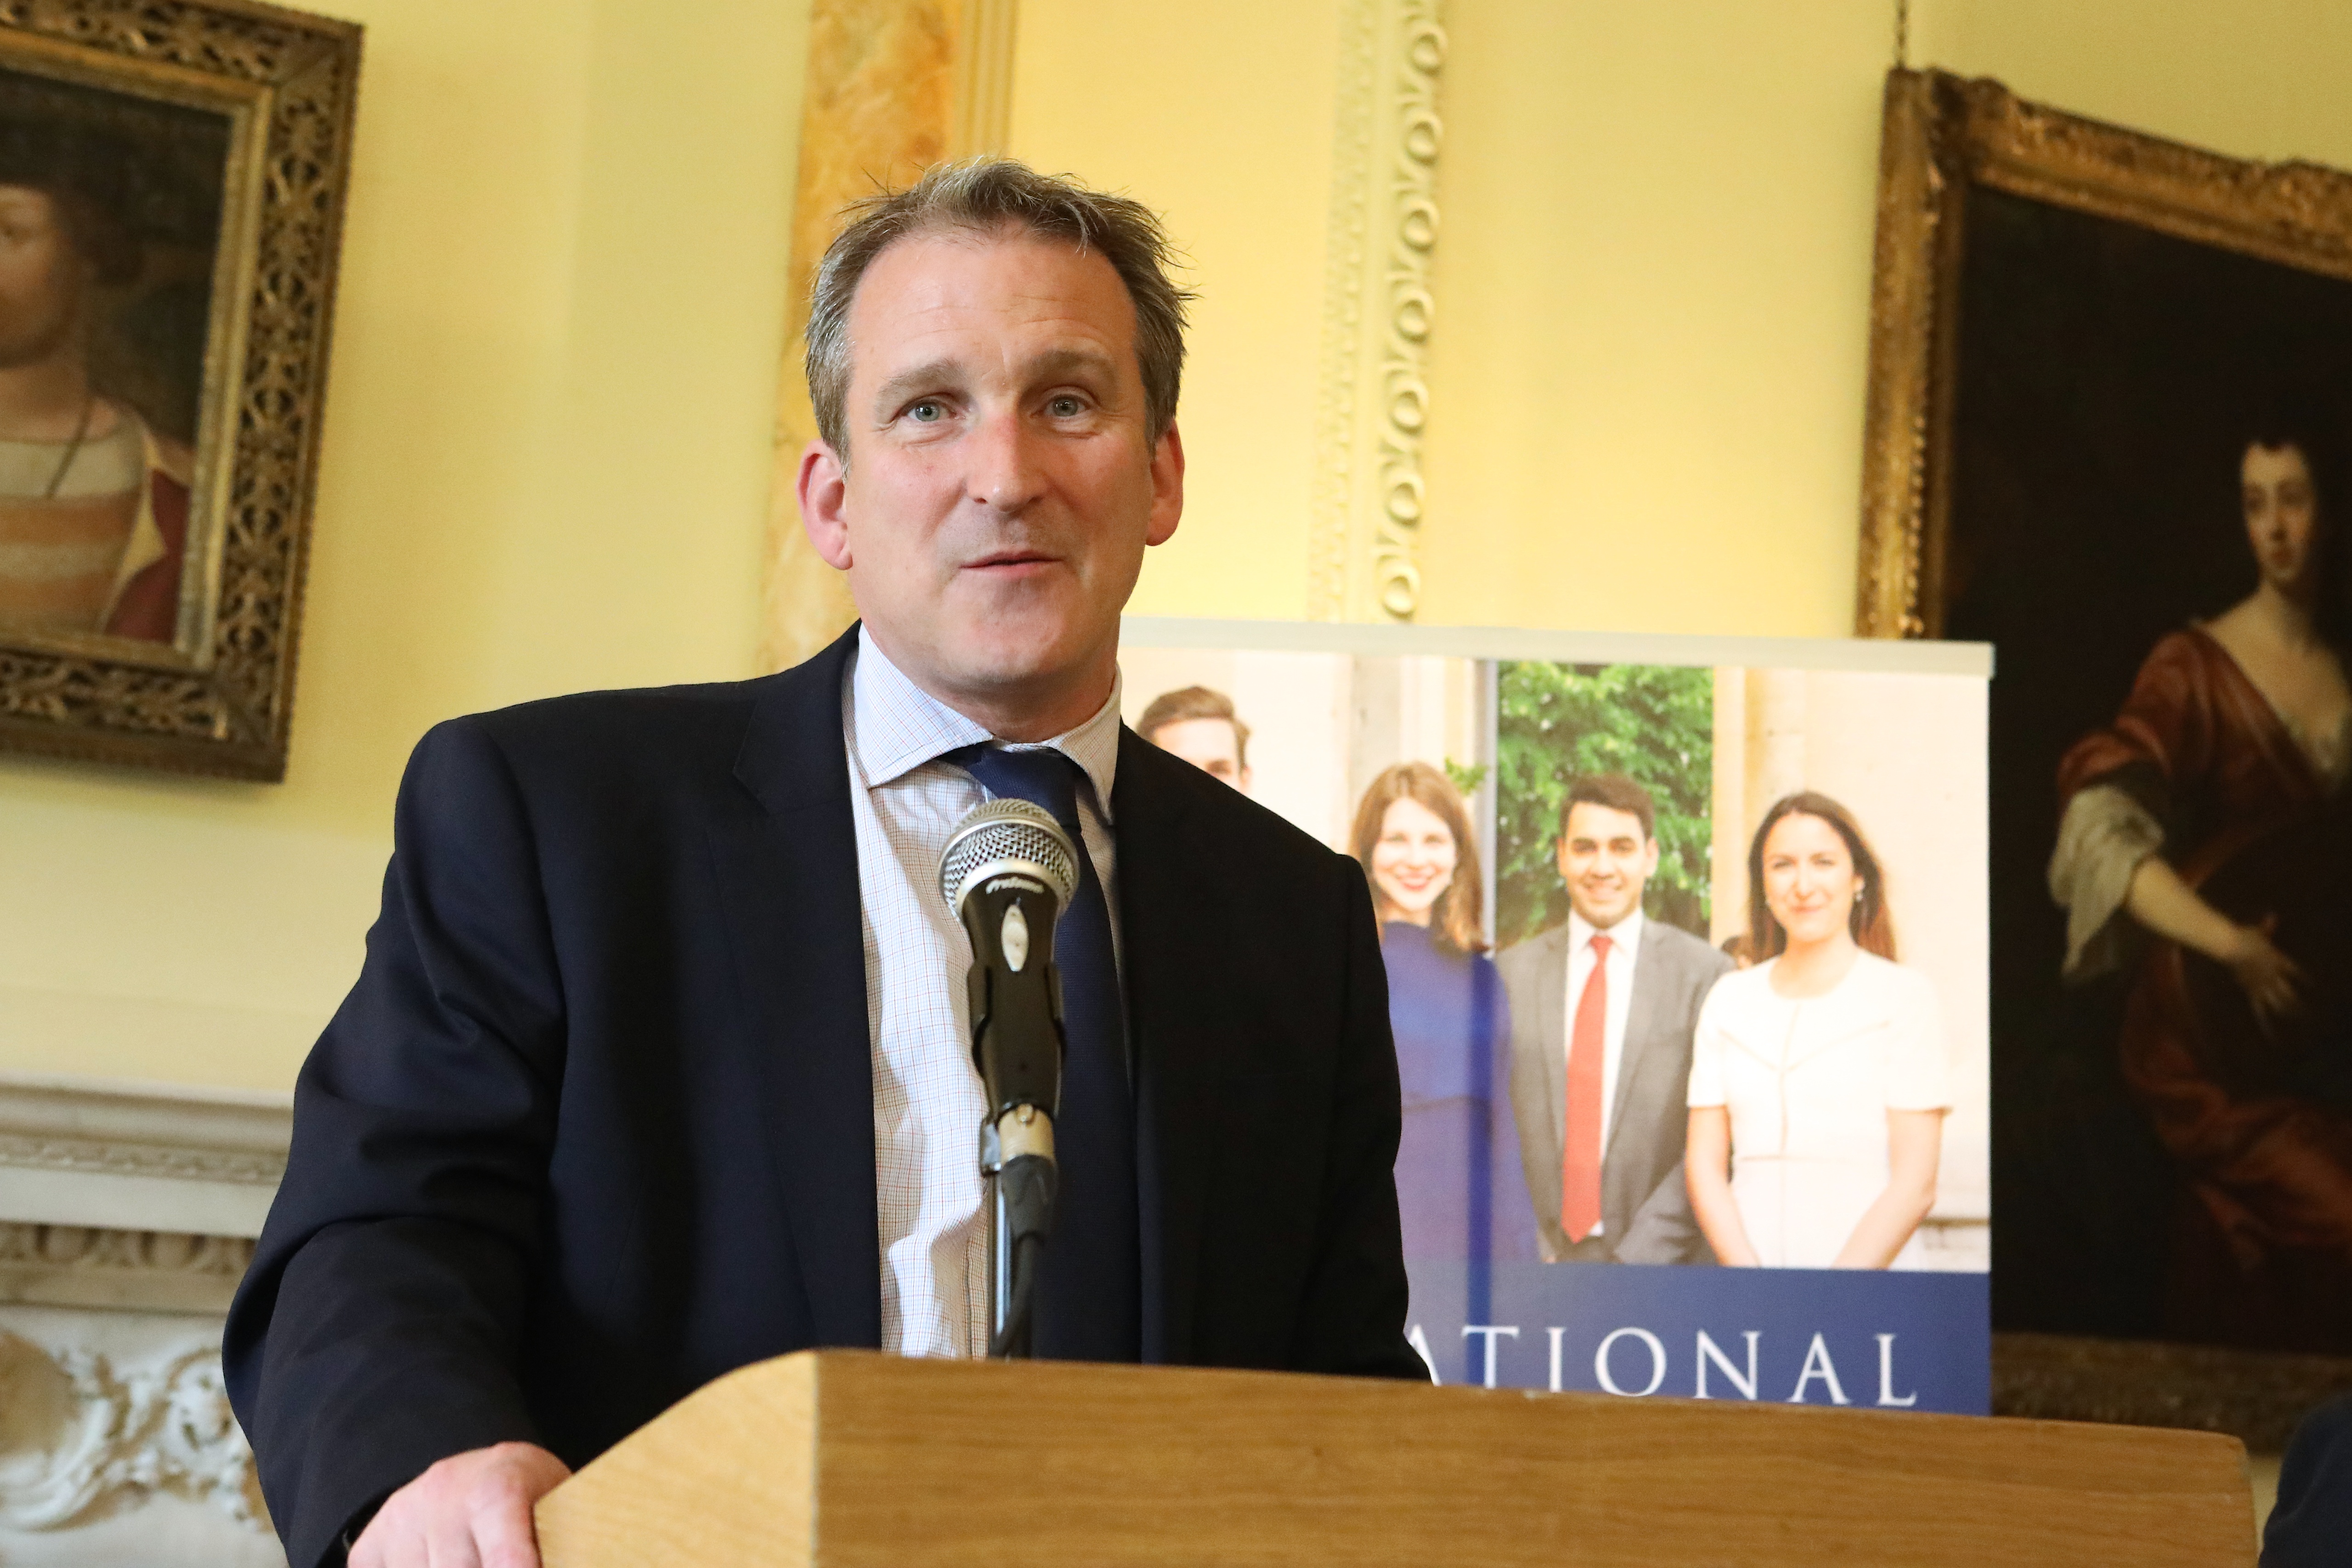 Education Secretary Damian Hinds remarked upon the value of sharing and exchanging knowledge and people.